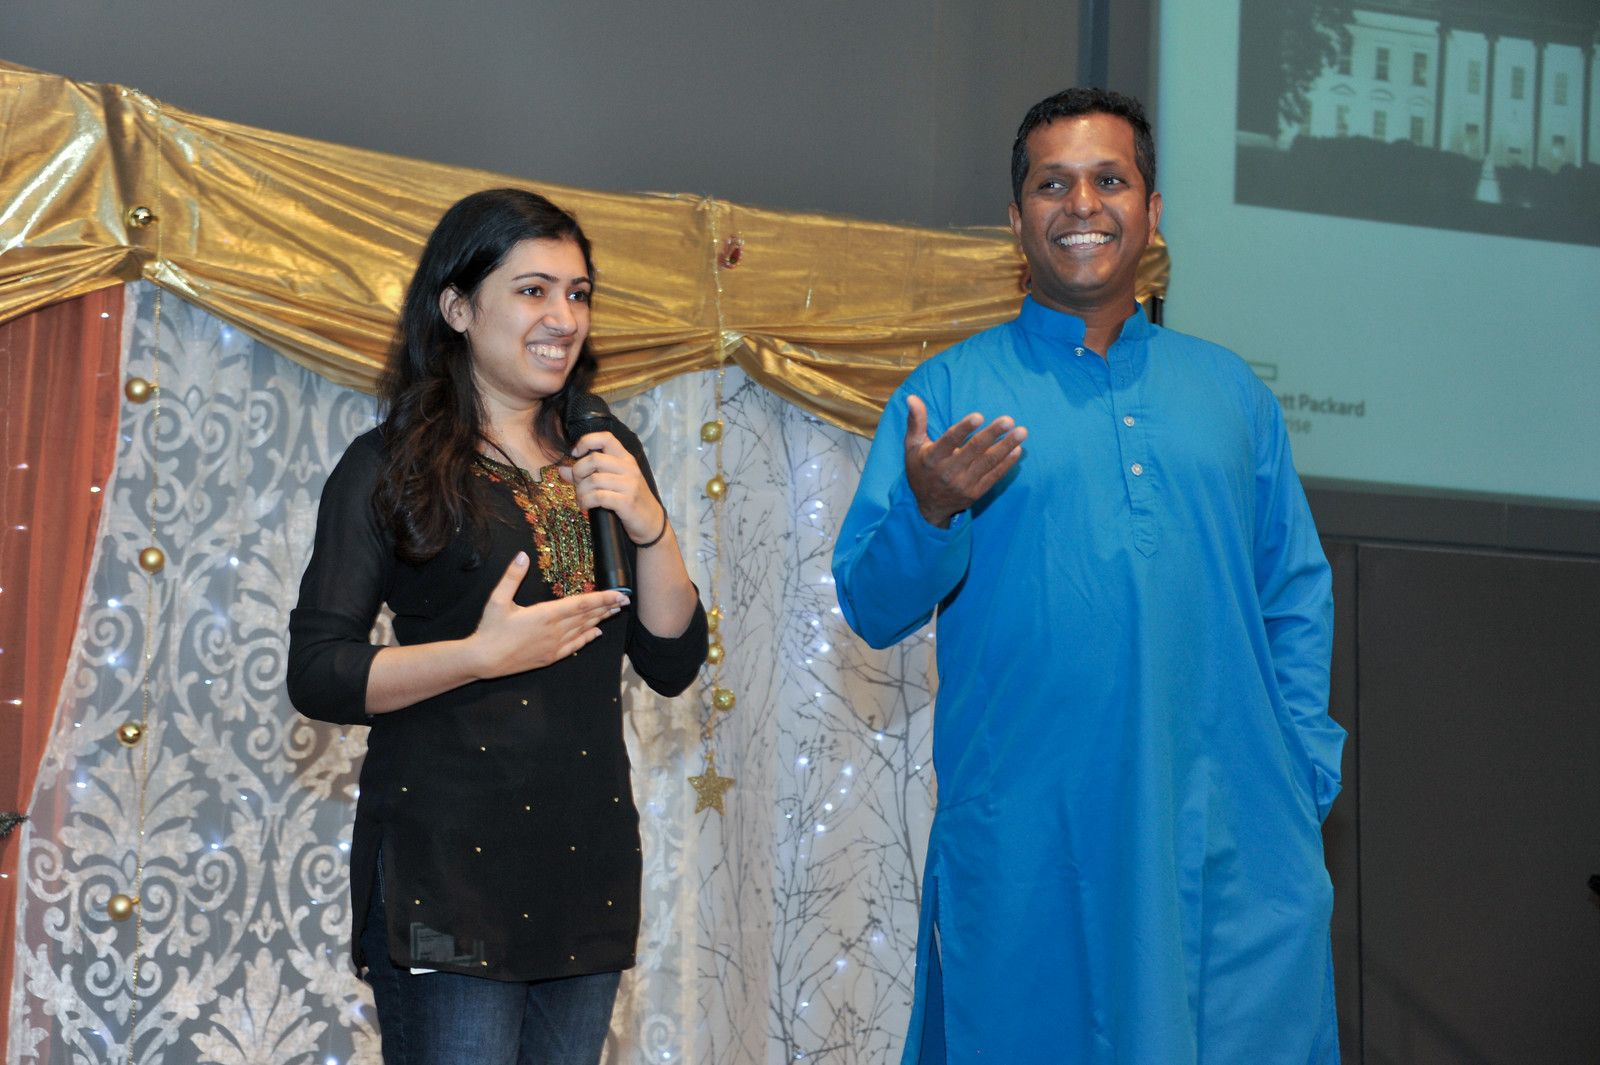 Diwali trivia - employees were quizzed on everything from Diwali culture to HPE history